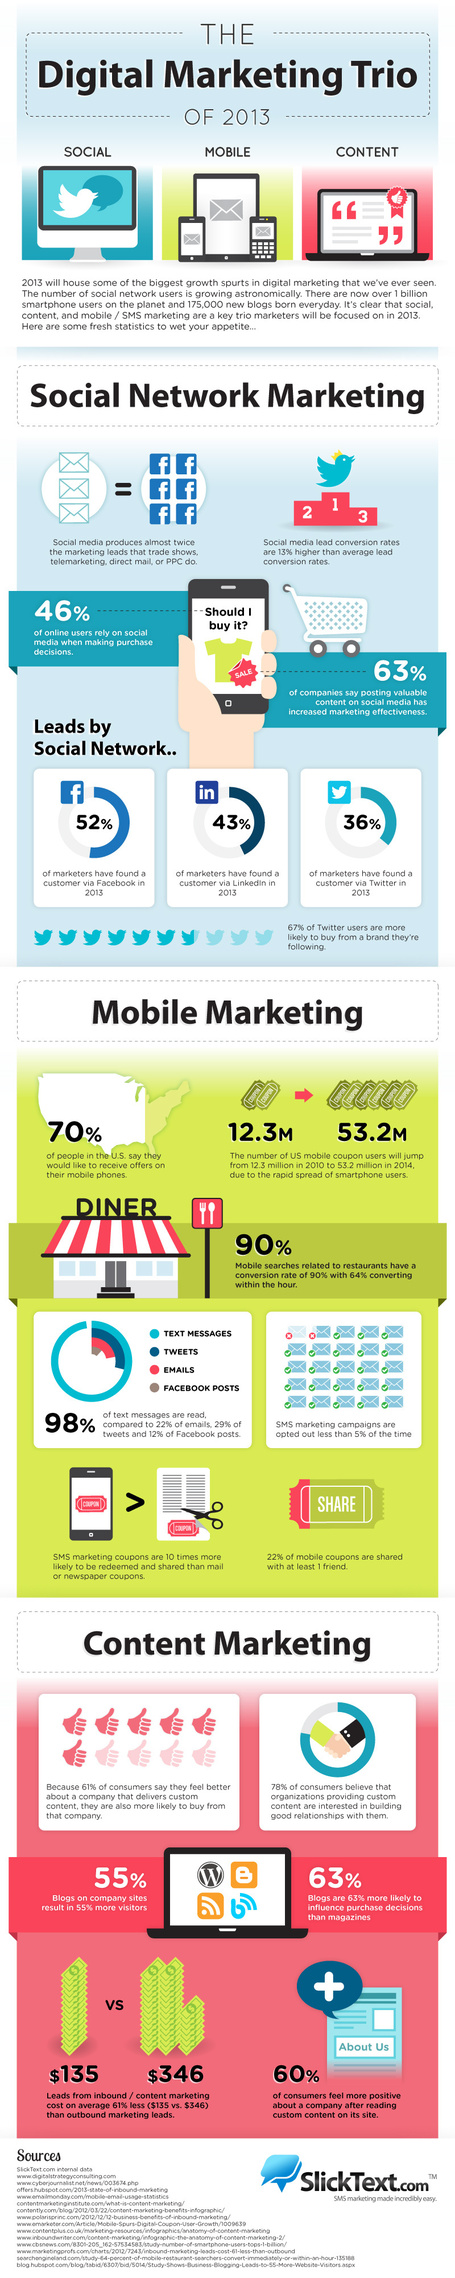 The Digital Marketing Trio Of 2013 [Infographic] | Surviving Social Chaos | Scoop.it